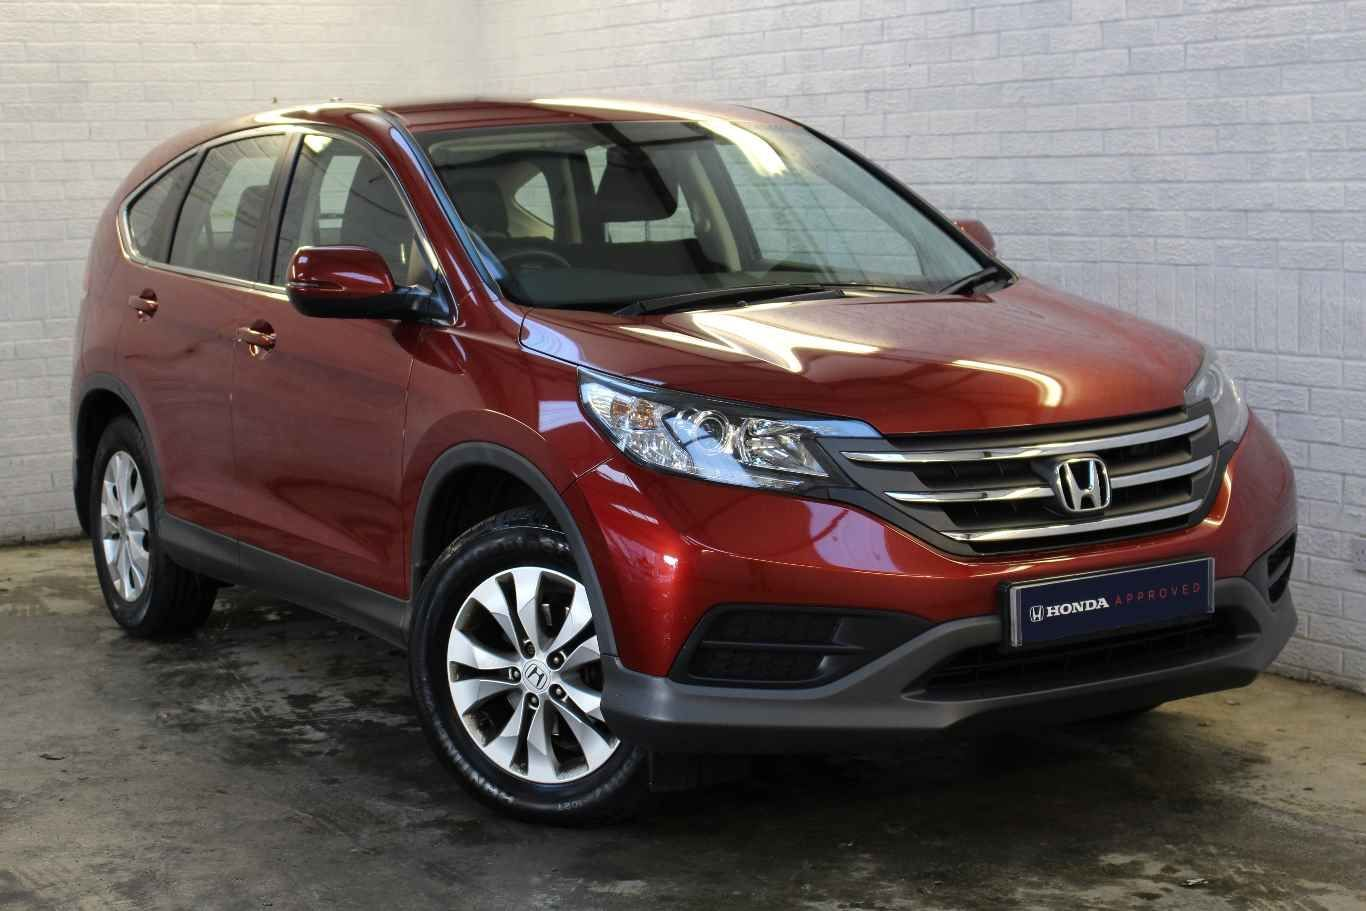 Honda CR-V 2.0I S Manual